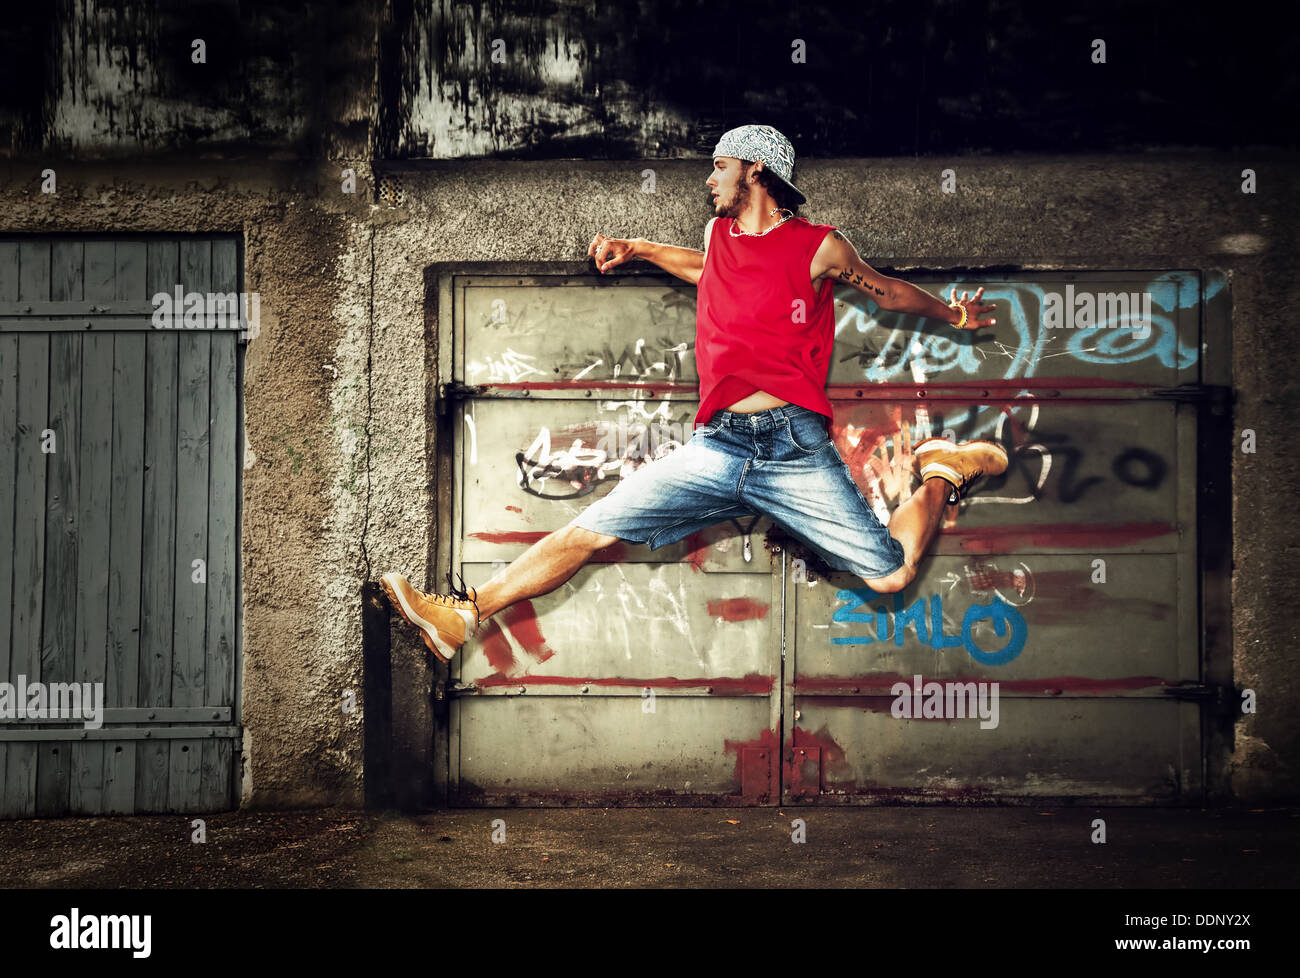 Young man / teen jumping / dancing on grunge graffiti wall background - Stock Image